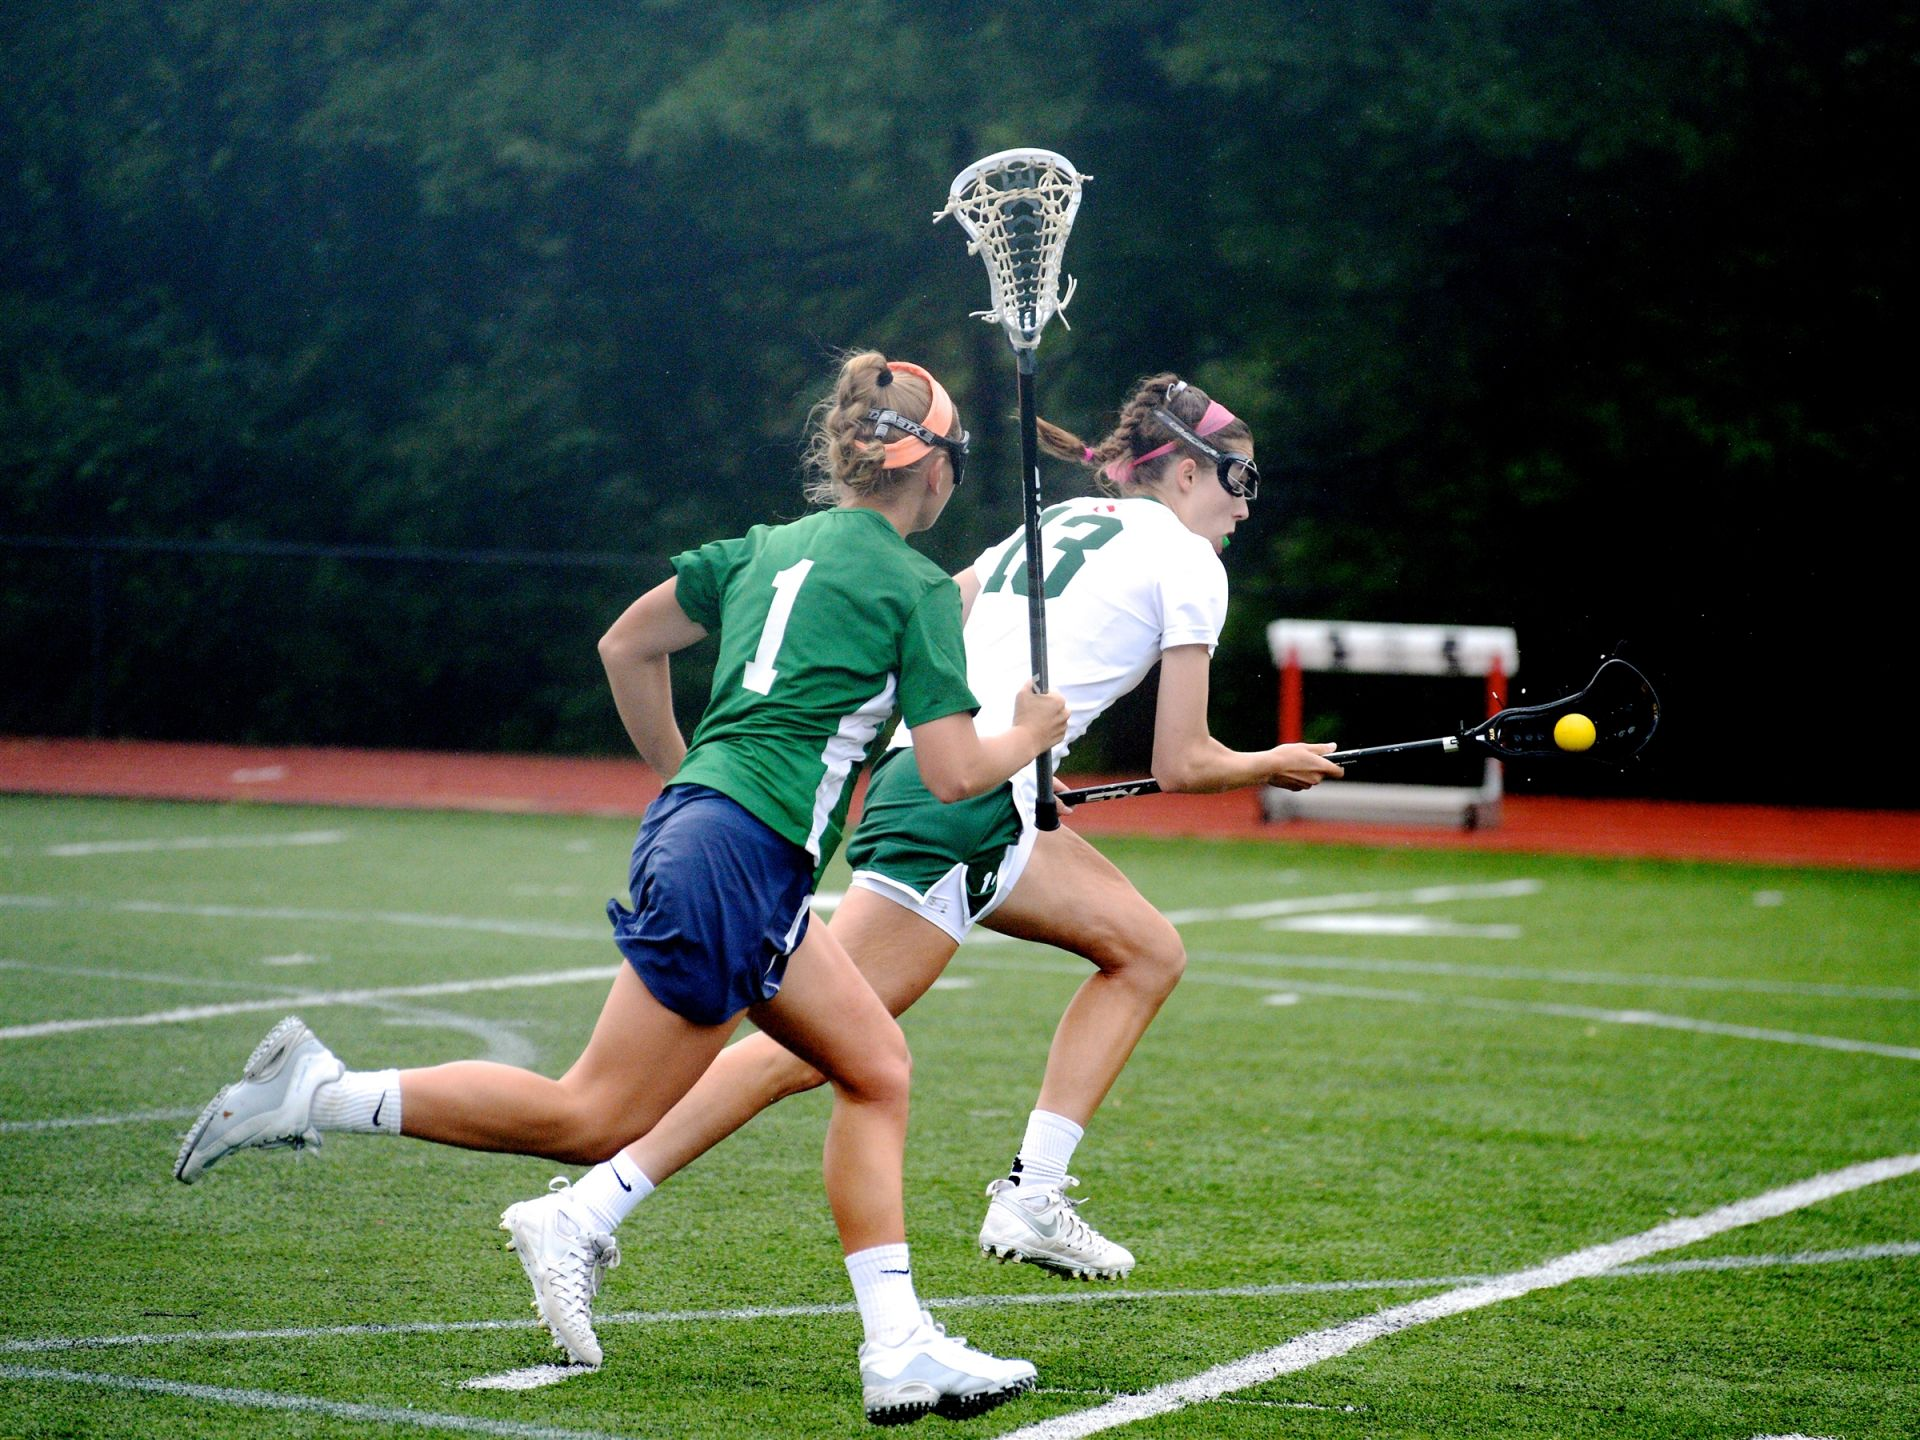 MARY GRACE GATELY | LACROSSE | MIDDLEBURY COLLEGE